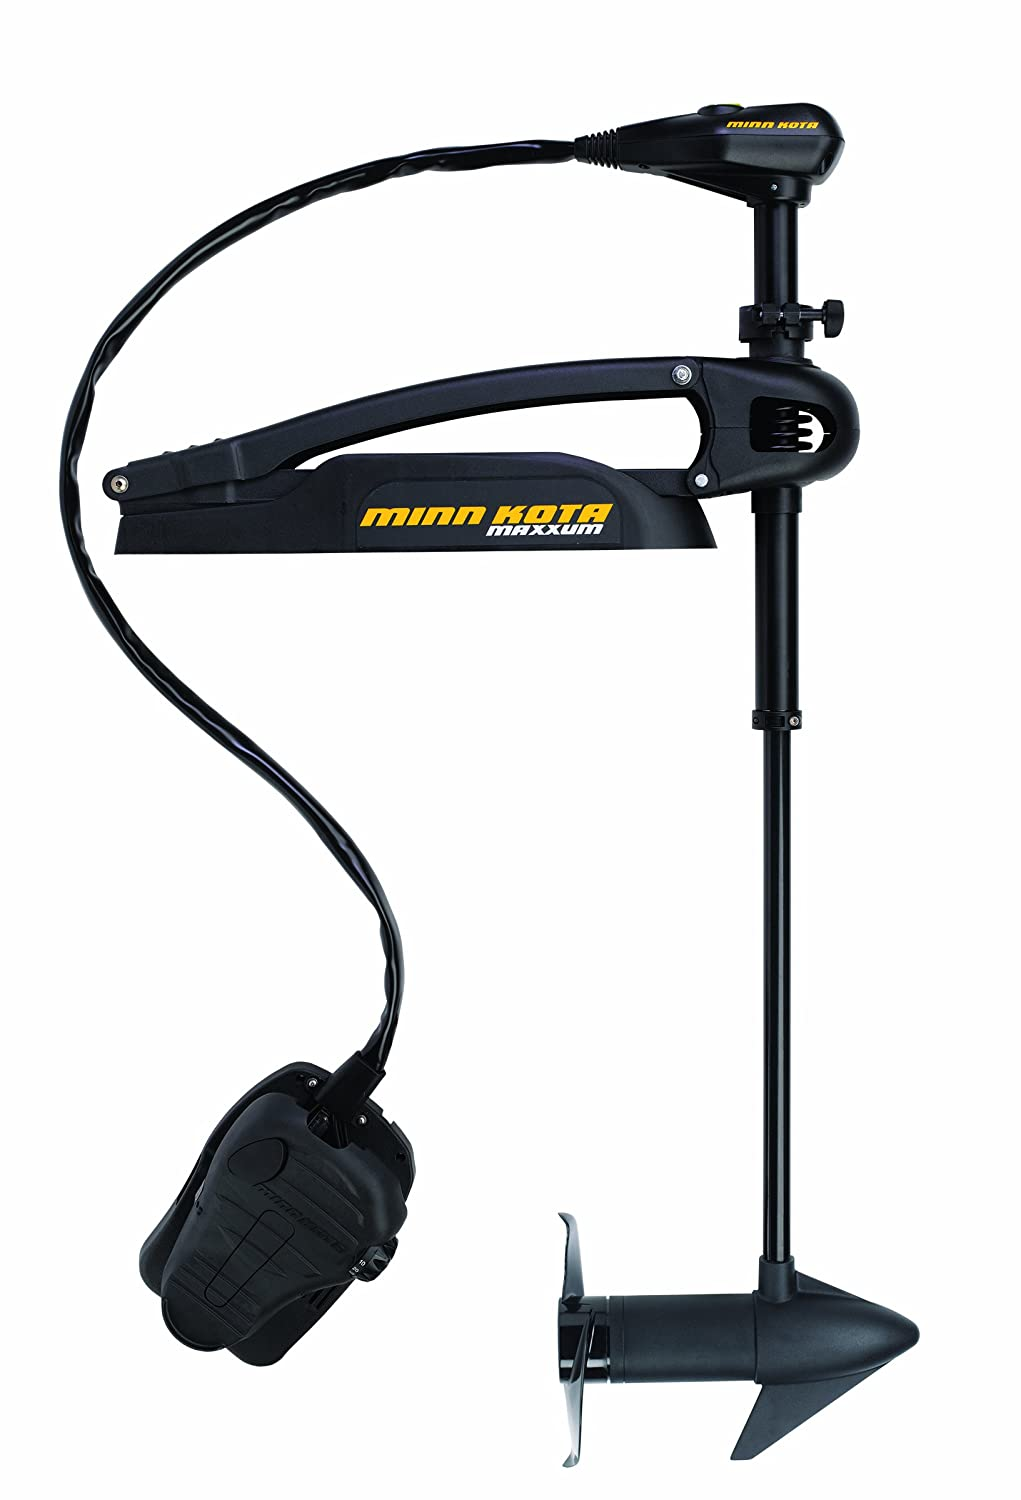 Minn Kota Maxxum Bowmount Trolling Motor With Hand Foot Control 24v Wiring Diagram Sports Outdoors